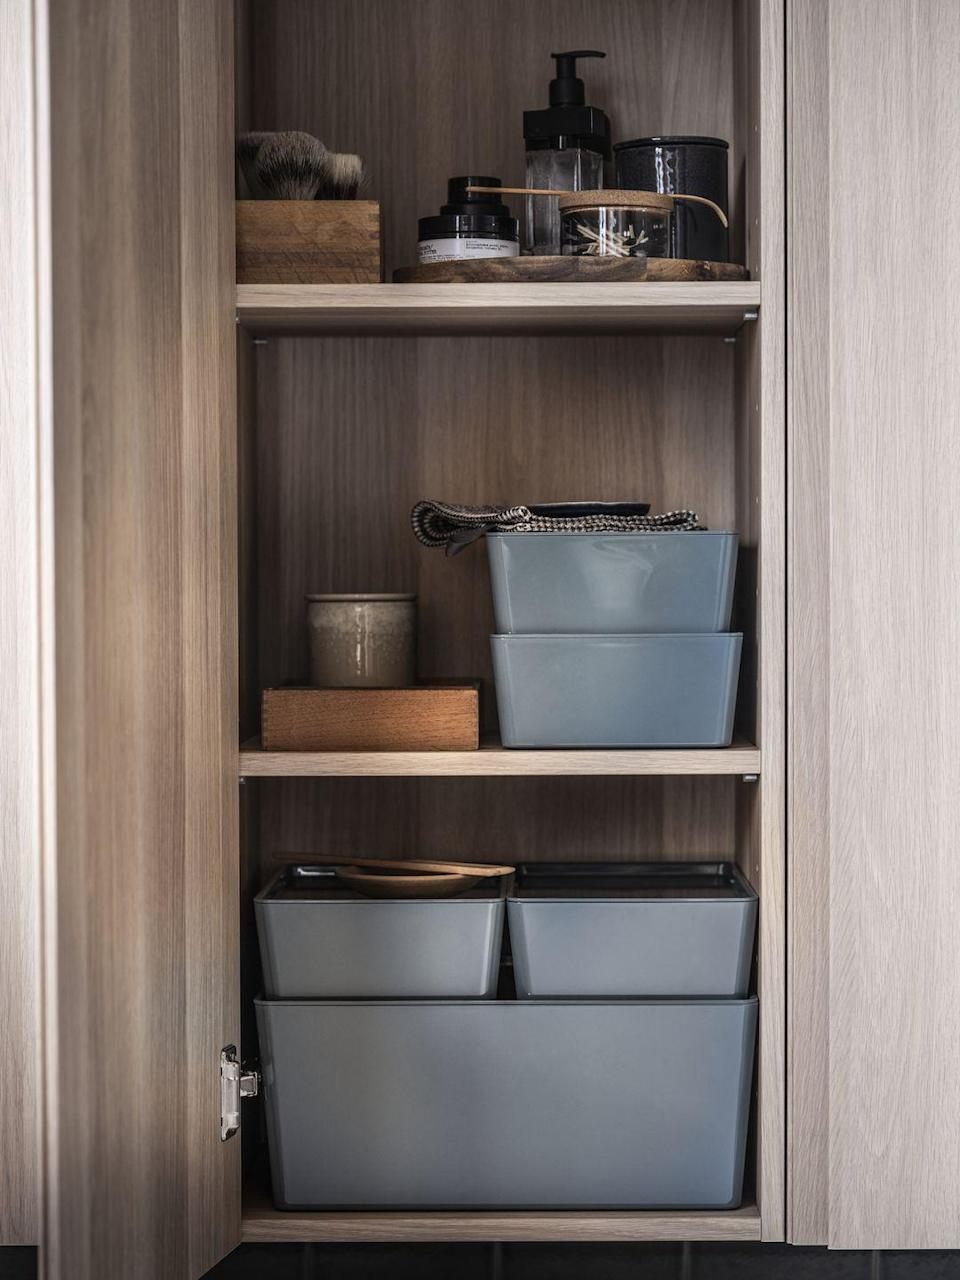 """<p>Create a comforting space by hiding away items in neatly-stacked boxes. While our belongings are what makes a home, clearing clutter will reduce stress and anxiety, improve your <a href=""""https://www.housebeautiful.com/uk/lifestyle/a32017773/sleep-anxiety/"""" rel=""""nofollow noopener"""" target=""""_blank"""" data-ylk=""""slk:sleep"""" class=""""link rapid-noclick-resp"""">sleep</a>, and boost your levels of creativity. </p><p>As part of IKEA's Home Sanctuary range, you'll find all you need to tidy your space, from <a href=""""https://www.housebeautiful.com/uk/lifestyle/storage/g31213380/storage-baskets/"""" rel=""""nofollow noopener"""" target=""""_blank"""" data-ylk=""""slk:wicker baskets"""" class=""""link rapid-noclick-resp"""">wicker baskets</a> to basic boxes. </p><p><strong>Like this article? </strong><a href=""""https://hearst.emsecure.net/optiext/cr.aspx?ID=DR9UY9ko5HvLAHeexA2ngSL3t49WvQXSjQZAAXe9gg0Rhtz8pxOWix3TXd_WRbE3fnbQEBkC%2BEWZDx"""" rel=""""nofollow noopener"""" target=""""_blank"""" data-ylk=""""slk:Sign up to our newsletter"""" class=""""link rapid-noclick-resp""""><strong>Sign up to our newsletter</strong></a><strong> to get more articles like this delivered straight to your inbox.</strong></p><p><a class=""""link rapid-noclick-resp"""" href=""""https://hearst.emsecure.net/optiext/cr.aspx?ID=DR9UY9ko5HvLAHeexA2ngSL3t49WvQXSjQZAAXe9gg0Rhtz8pxOWix3TXd_WRbE3fnbQEBkC%2BEWZDx"""" rel=""""nofollow noopener"""" target=""""_blank"""" data-ylk=""""slk:SIGN UP"""">SIGN UP</a><br><br>Not able to make it to the shops? <a href=""""https://go.redirectingat.com?id=127X1599956&url=https%3A%2F%2Fwww.hearstmagazines.co.uk%2Fhb%2Fhouse-beautiful-magazine-subscription-website&sref=https%3A%2F%2Fwww.housebeautiful.com%2Fuk%2Flifestyle%2Fshopping%2Fg35209867%2Fikea-spring-summer-transitions-collection%2F"""" rel=""""nofollow noopener"""" target=""""_blank"""" data-ylk=""""slk:Subscribe to House Beautiful magazine today"""" class=""""link rapid-noclick-resp"""">Subscribe to House Beautiful magazine today</a> and get each issue delivered directly to your door. </p>"""